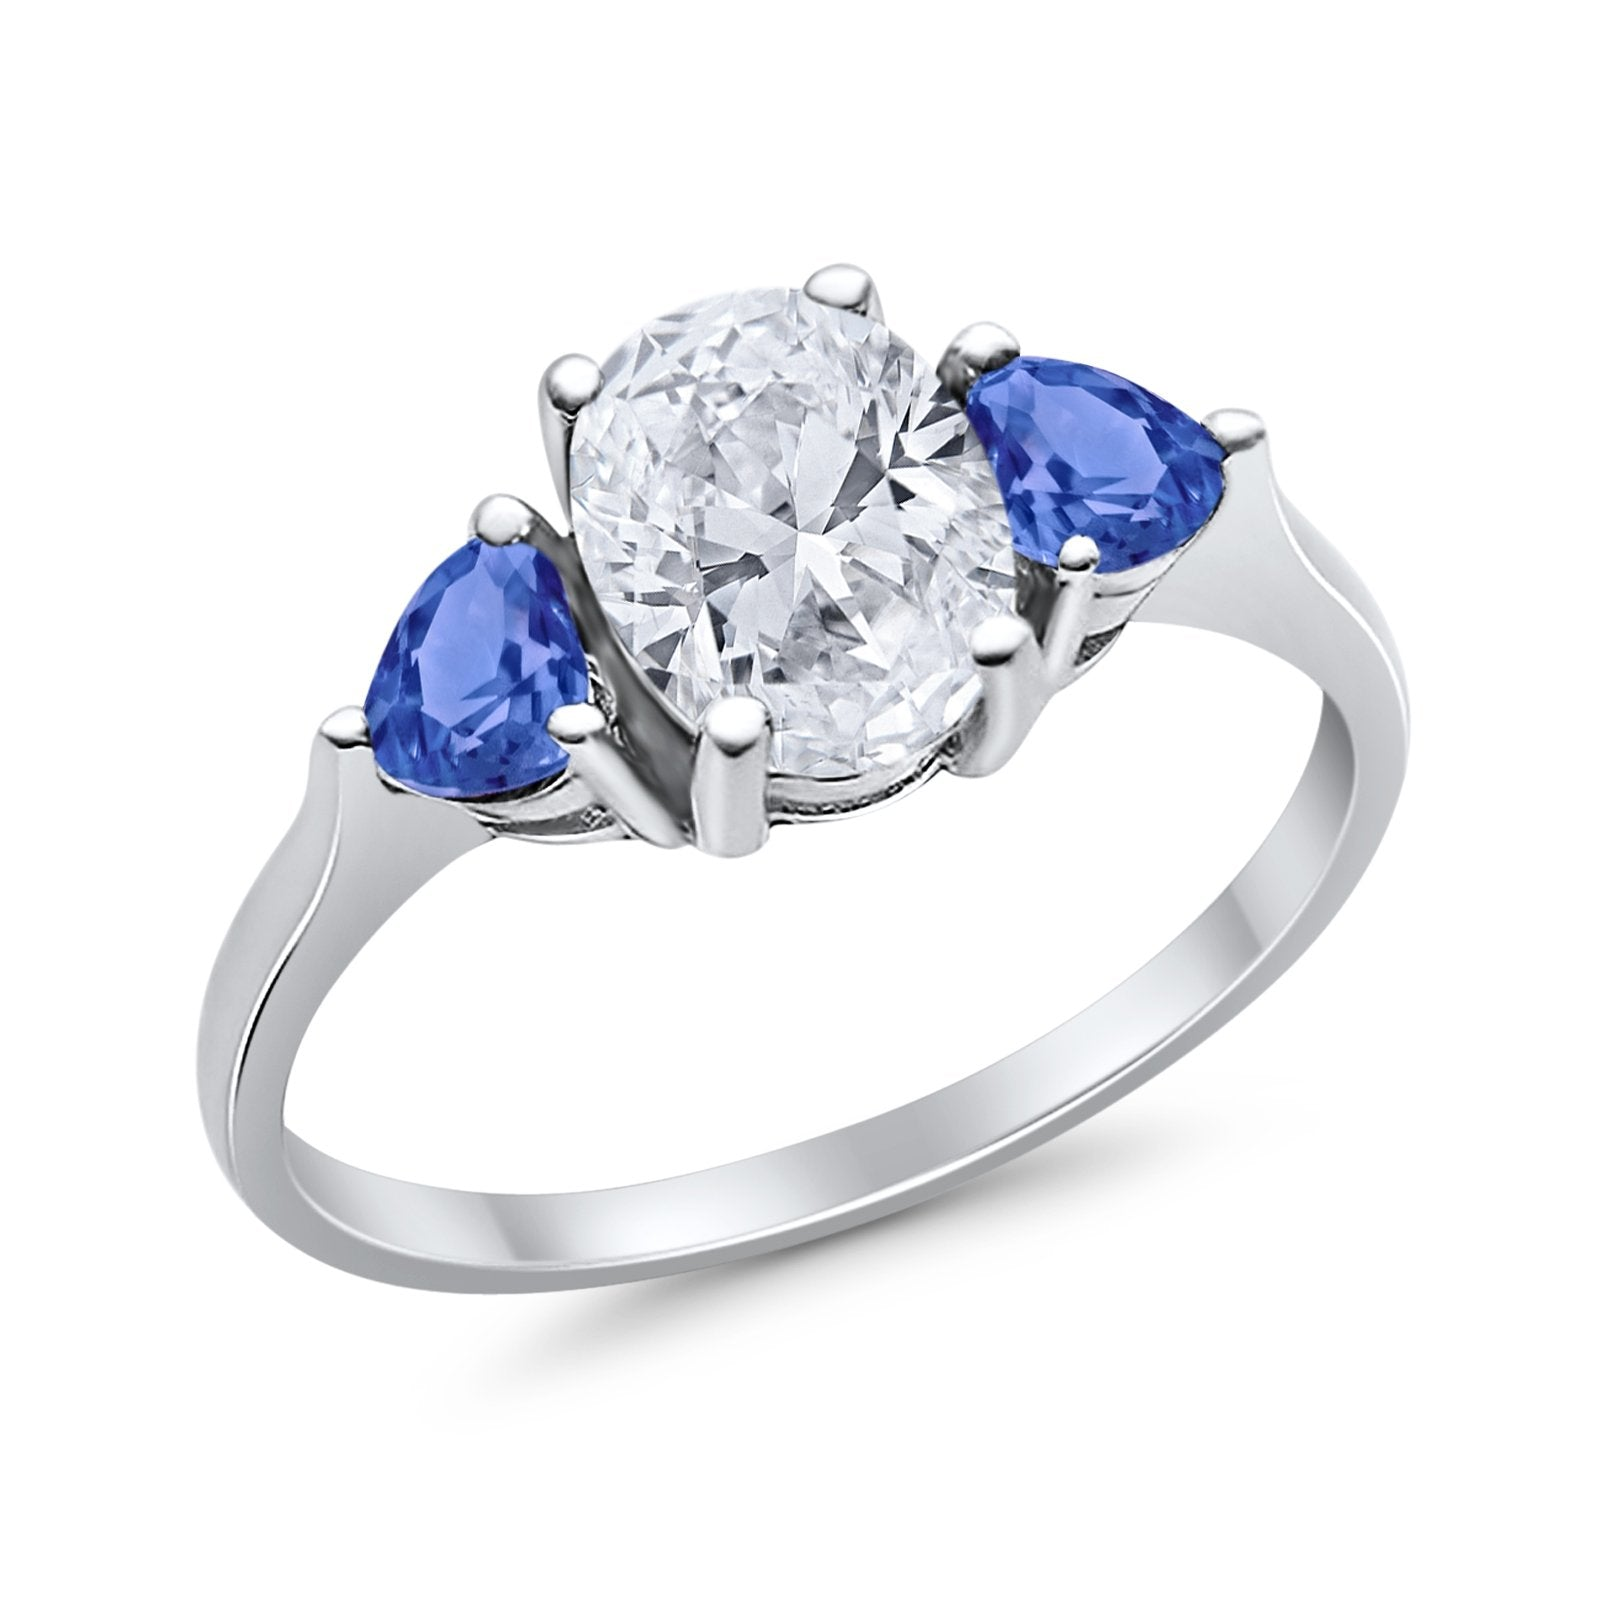 Fashion Promise Ring Oval Simulated Tanzanite CZ 925 Sterling Silver